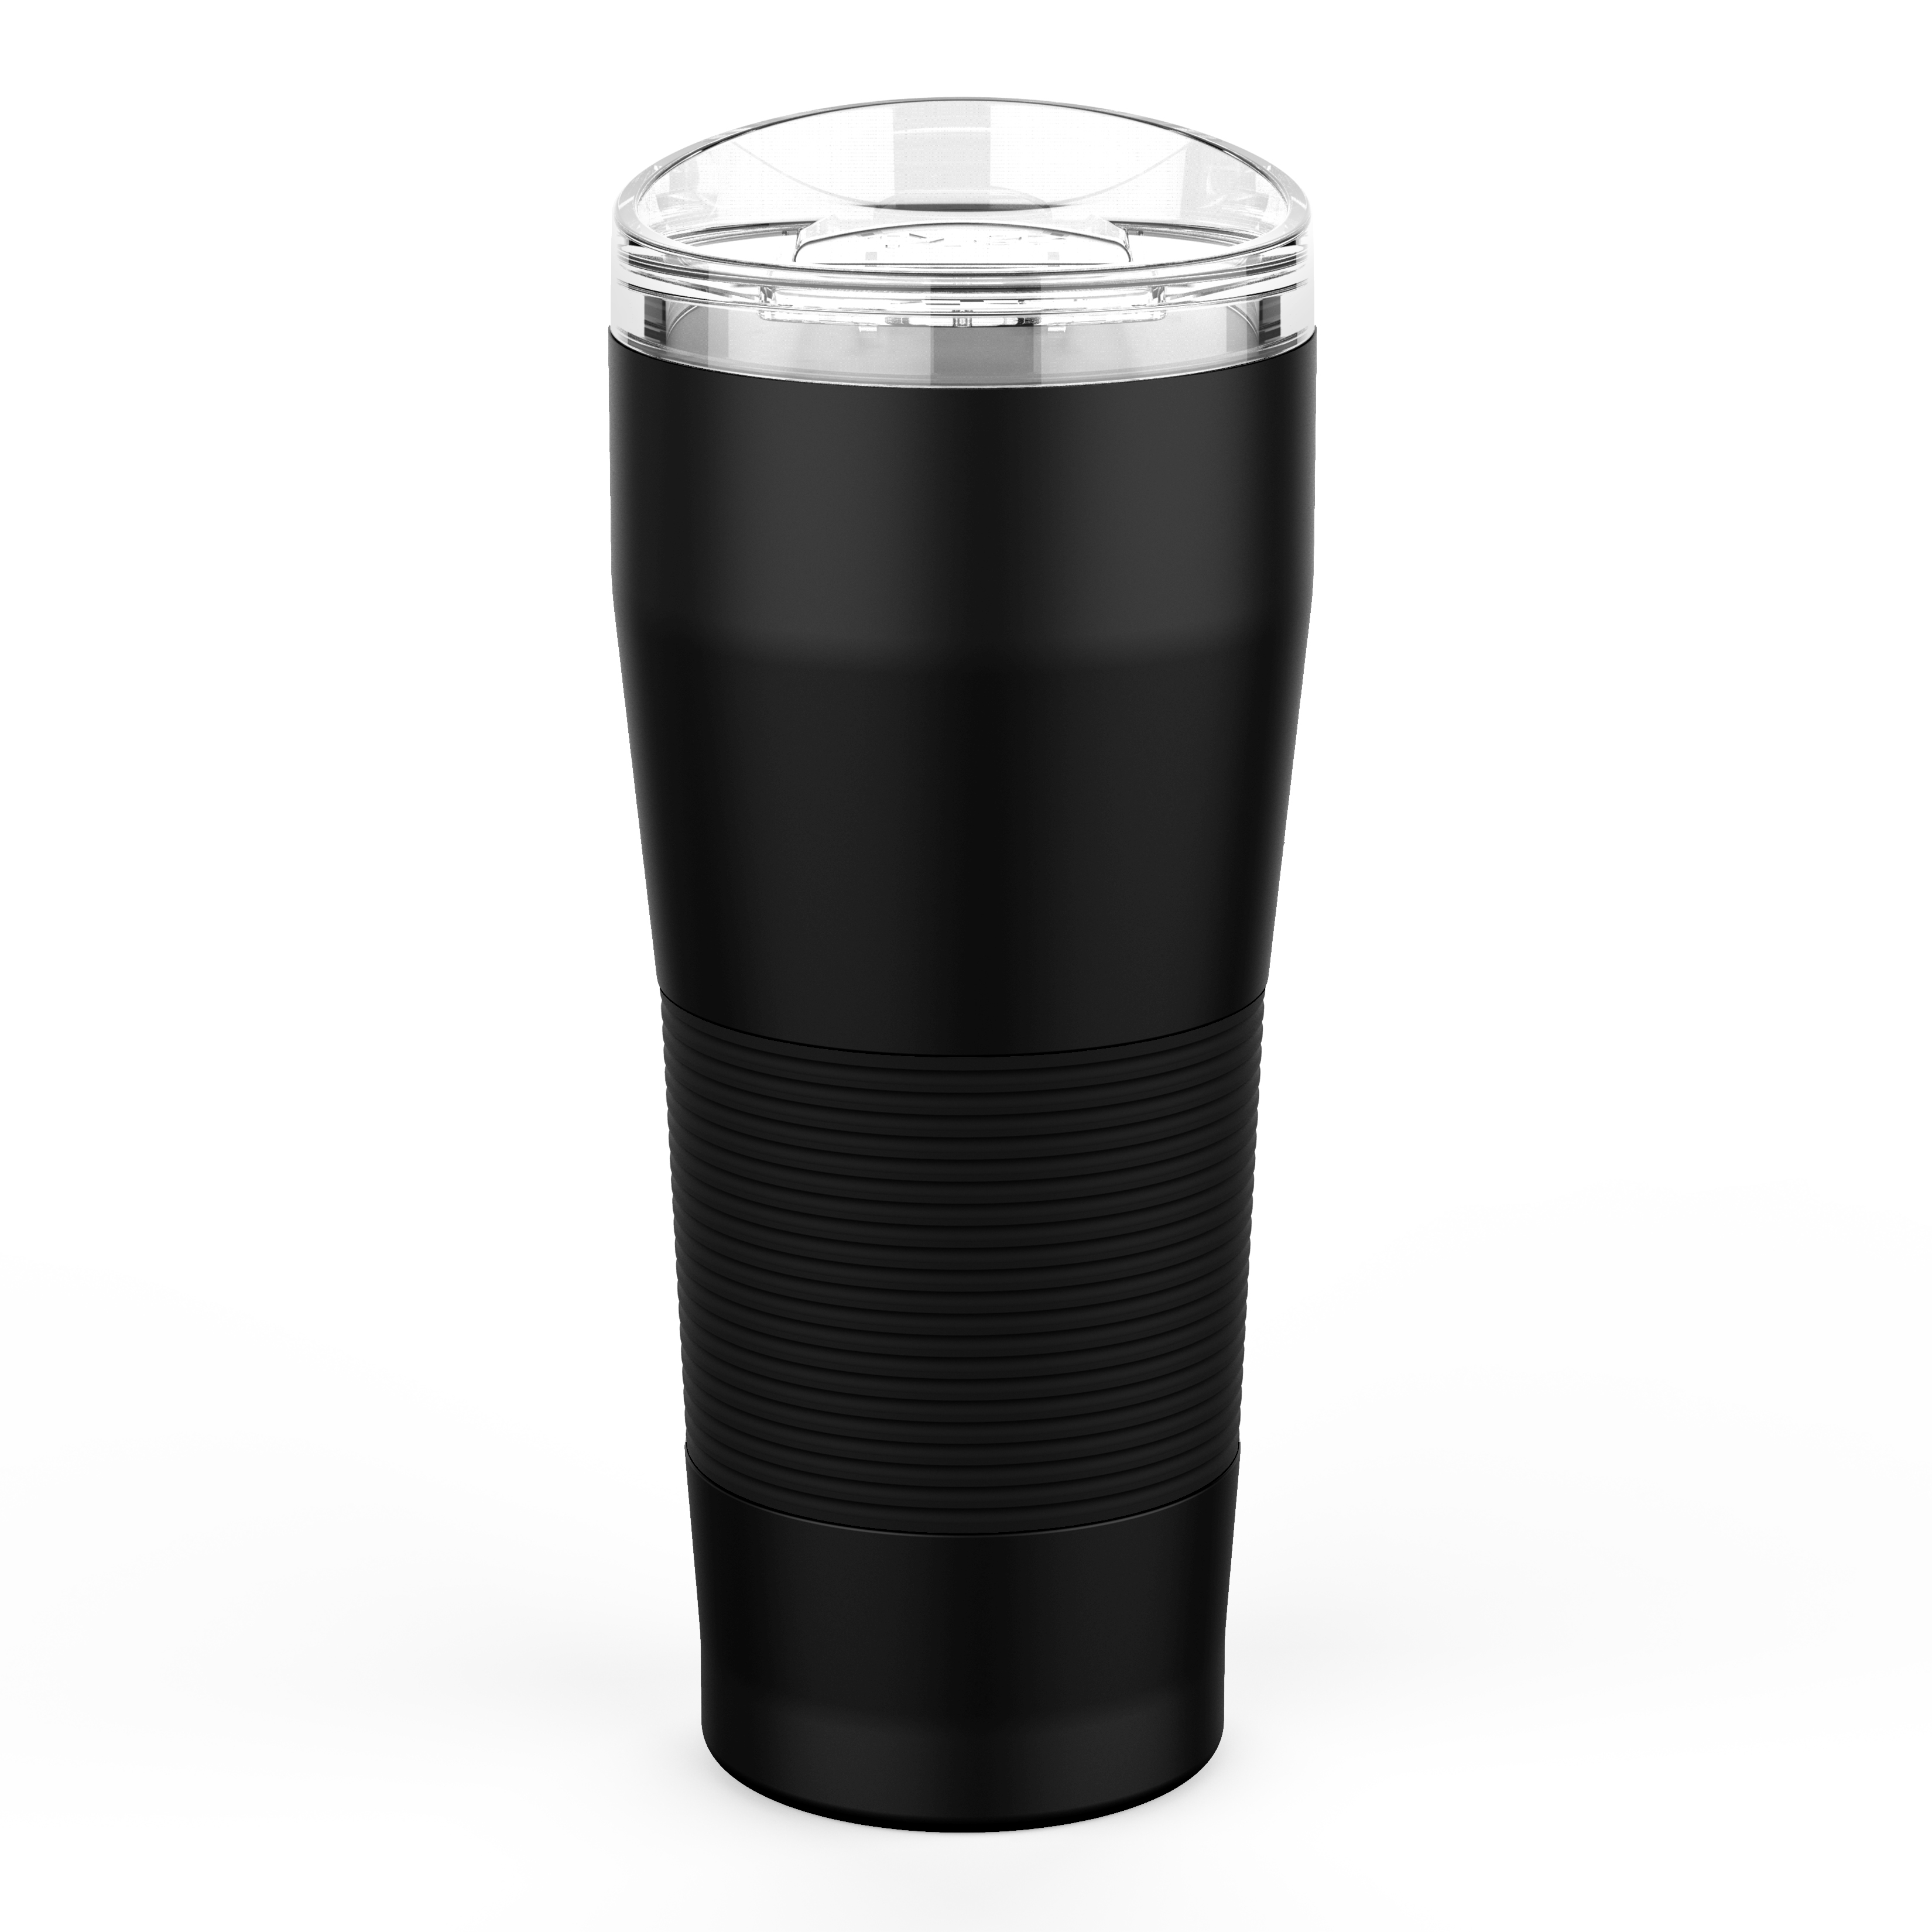 Star Wars 28 ounce Vacuum Insulated Stainless Steel Tumbler, Darth Vader slideshow image 4